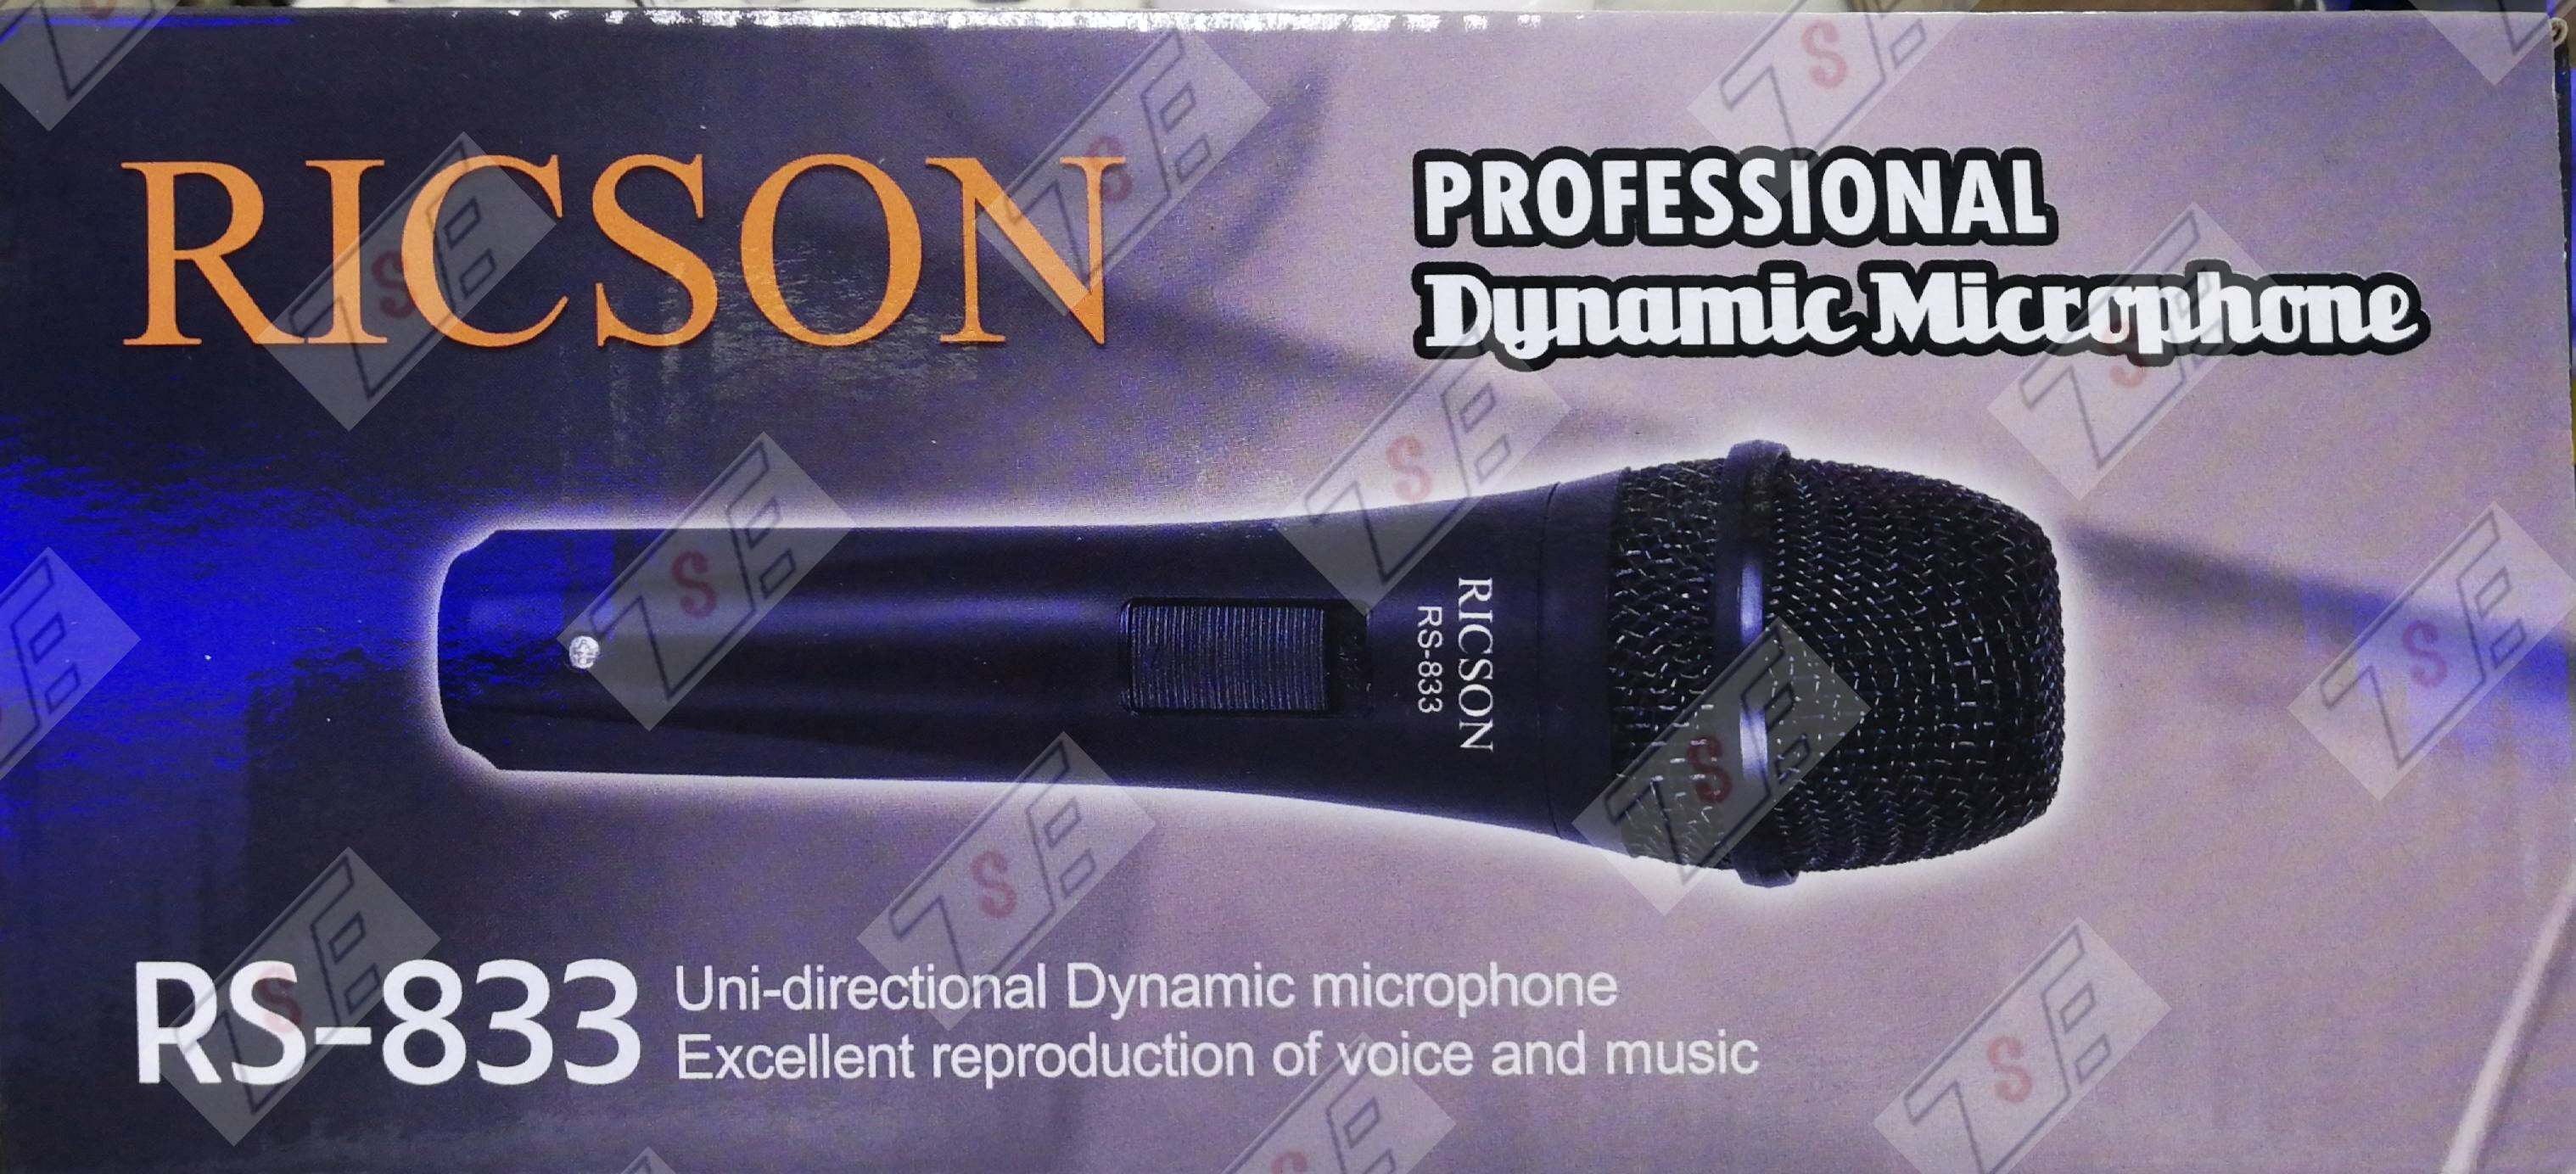 RICSON PROFESSIONAL DYNAMIC MICROPHONE RS-833